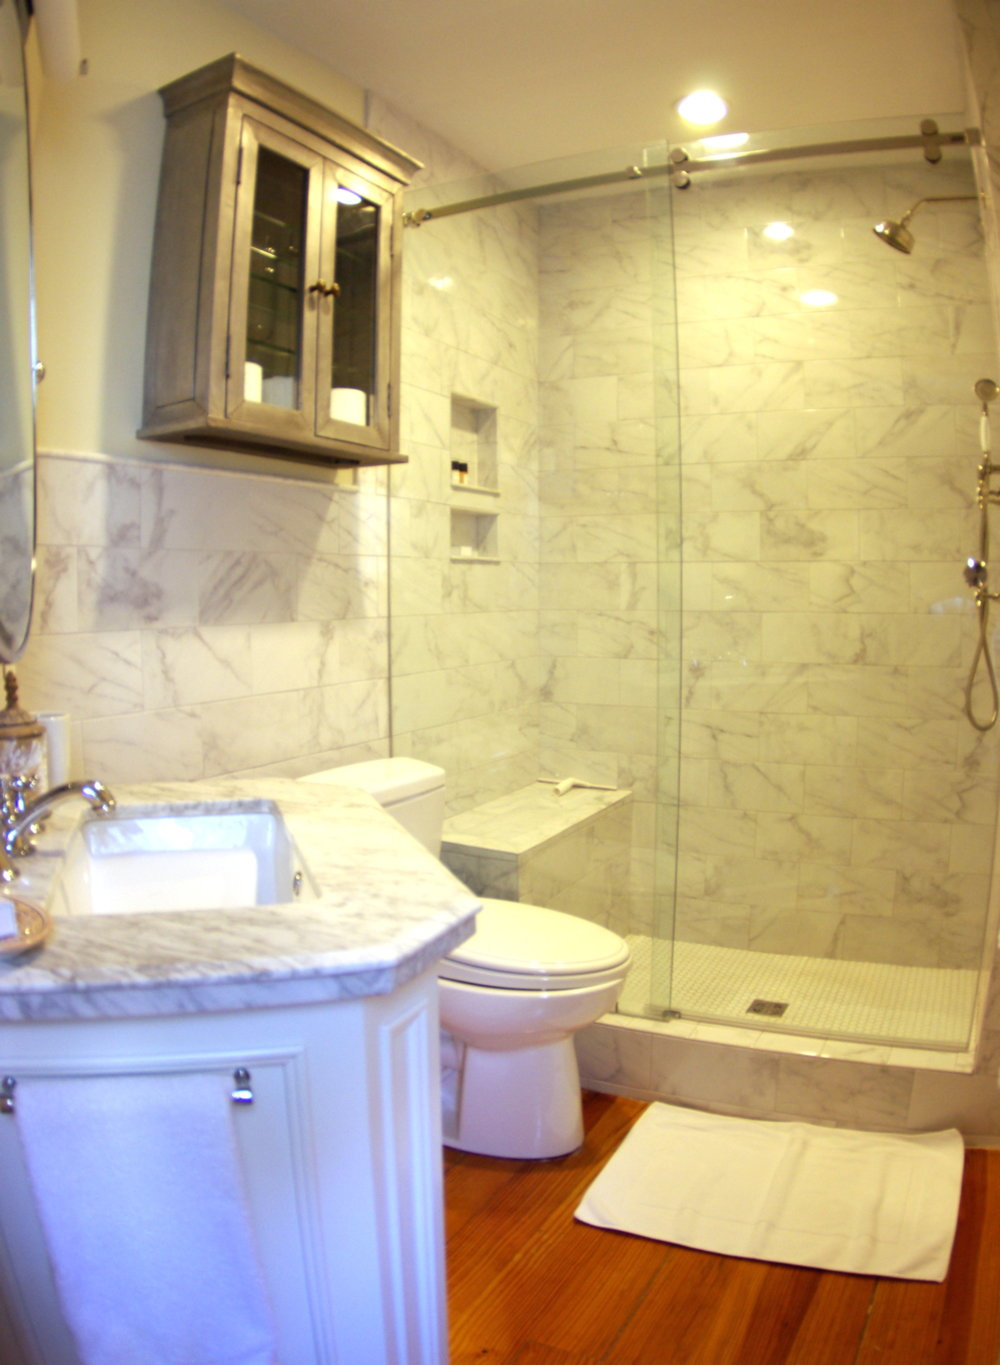 - Renovated full bathroom features beautiful marble and premium quality towels.